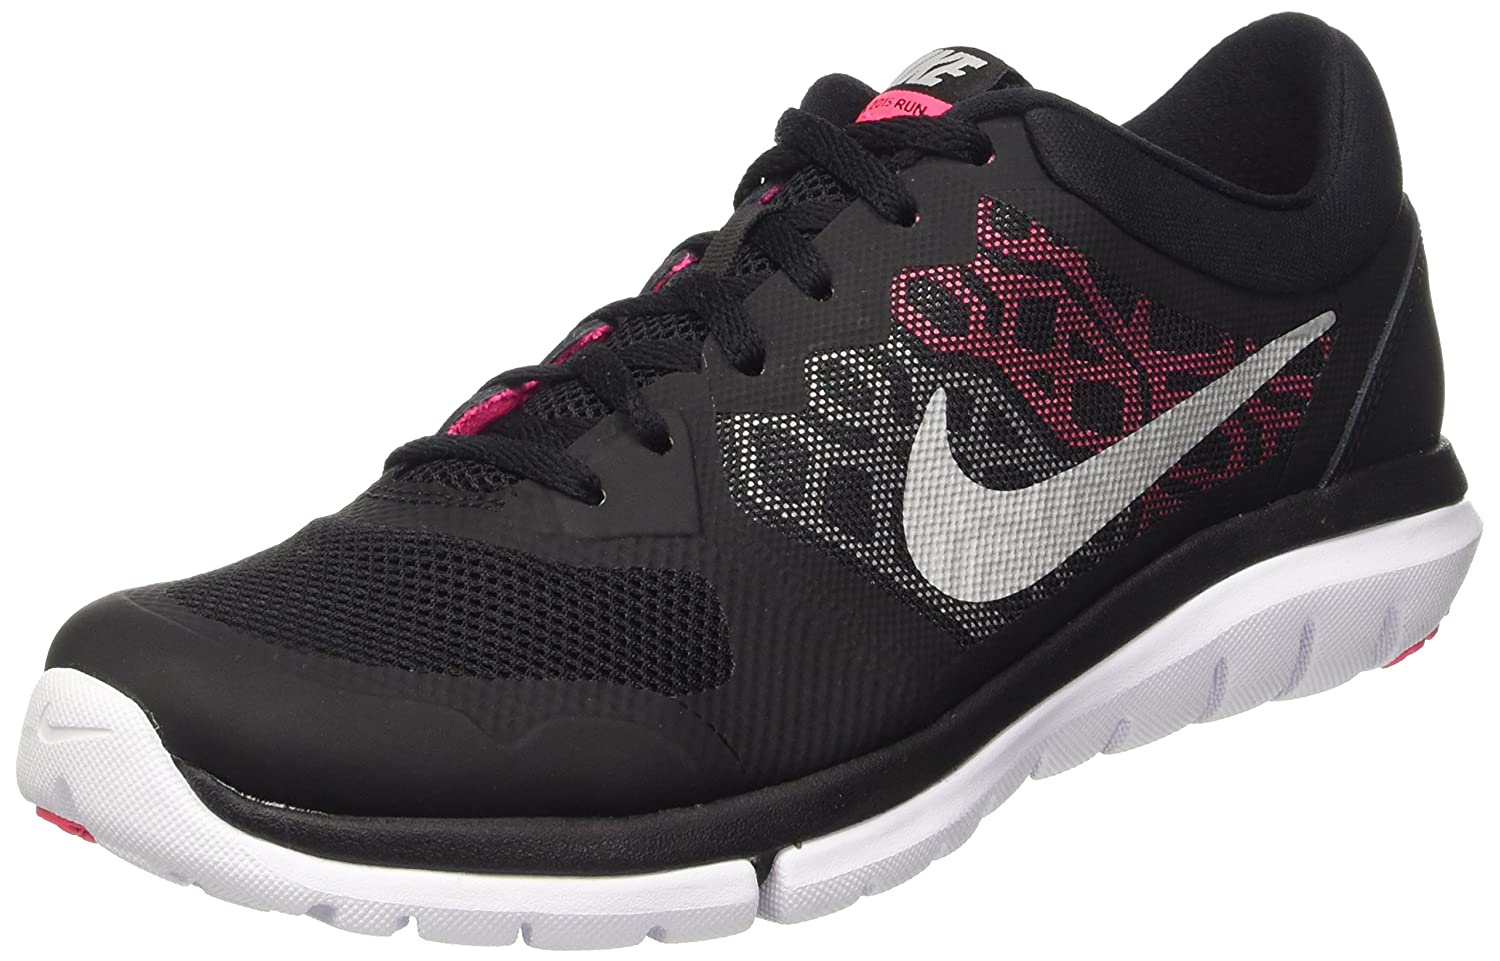 Nike Flexione 2015 Damas Zapatos Para Correr Amazon lUtuQb